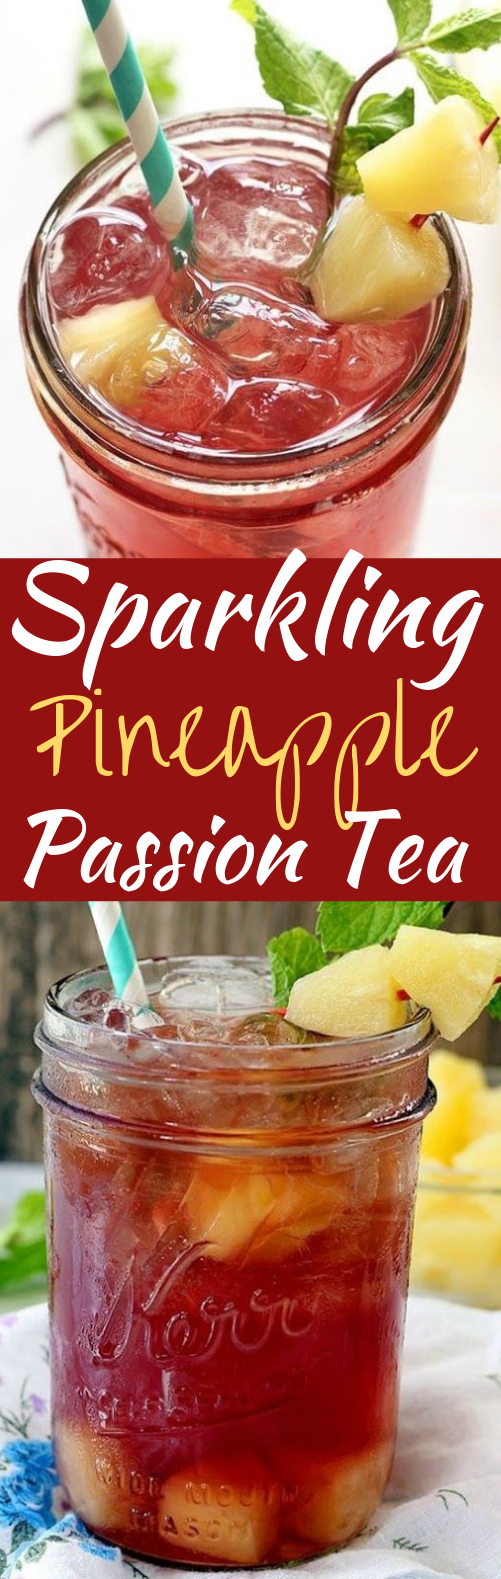 Sparkling Pineapple Passion Tea #summer #drinks